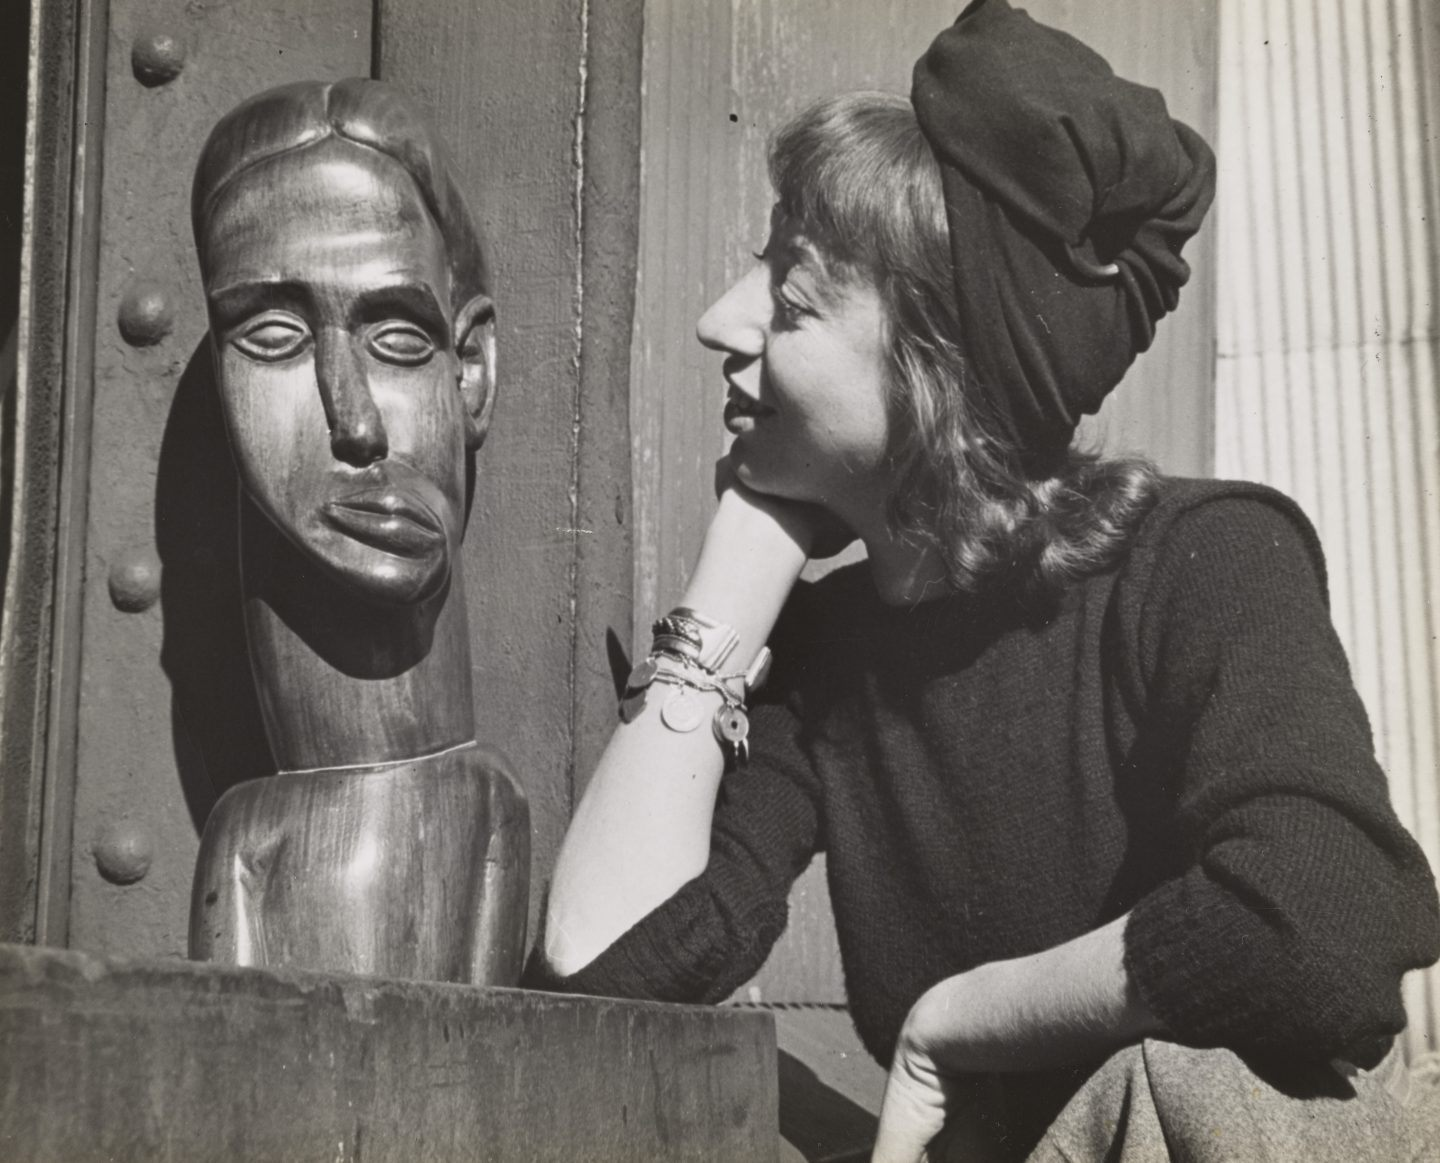 18.-Lee-Krasner-at-the-WPA-Pier,-New-York-City,-where-she-was-working-on-a-WPA-commission,--c.-1940.-Photo-Fred-Prater.-Lee-Krasner-Papers,-c.1905-1984.